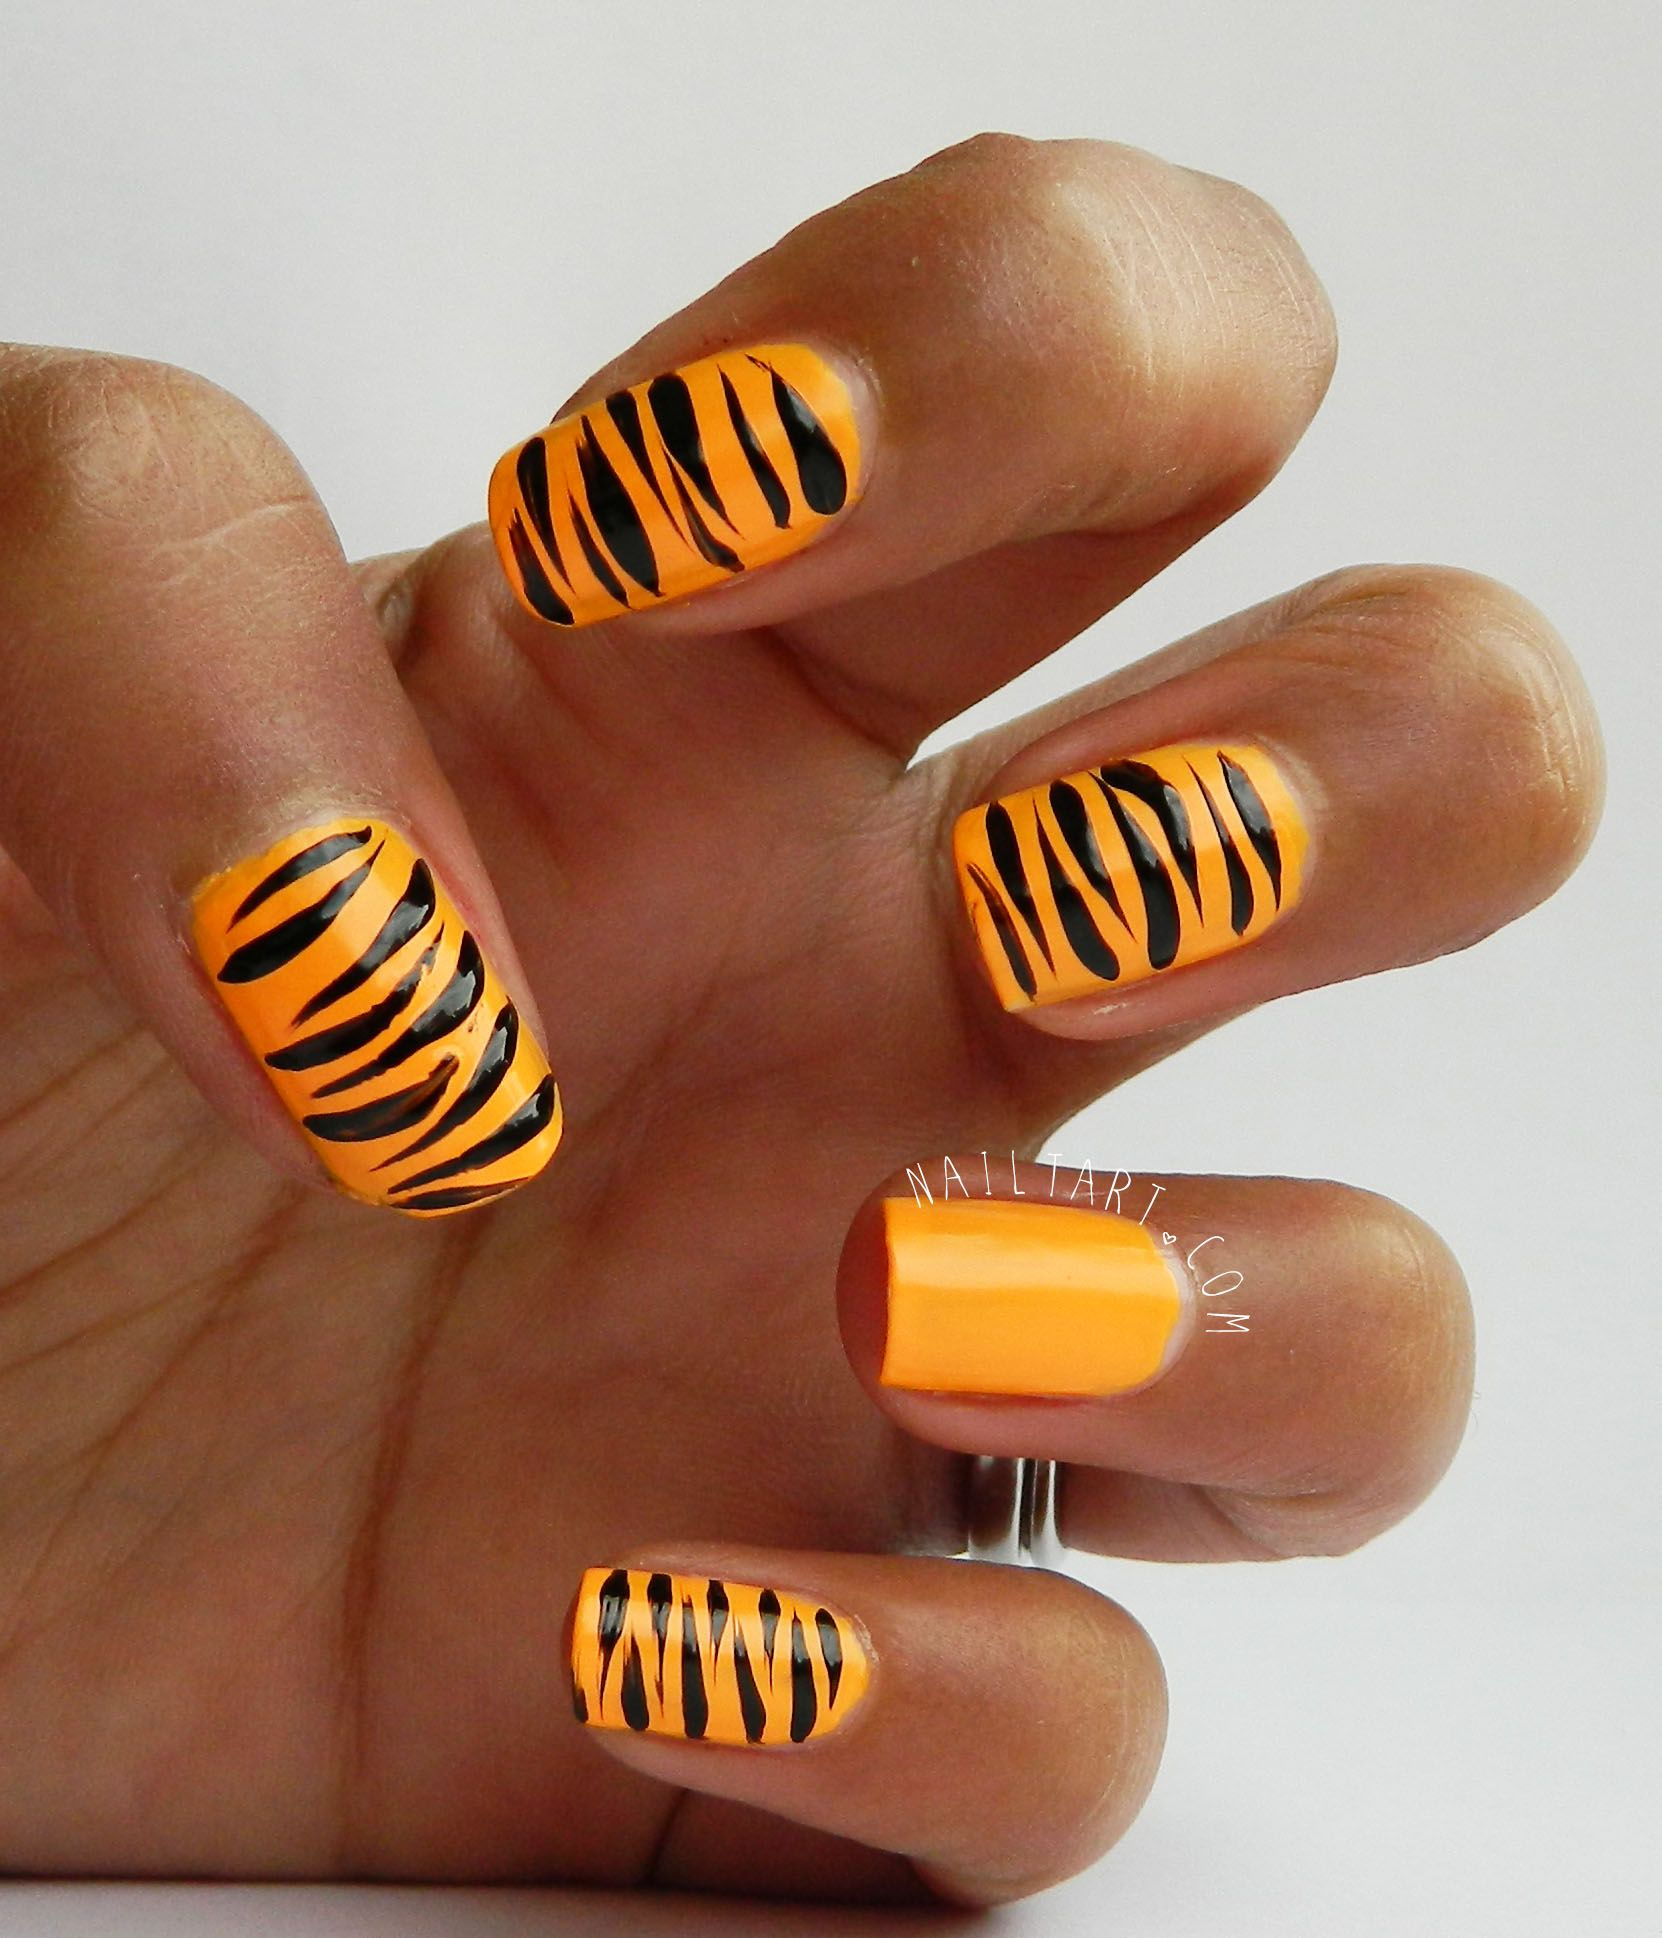 31 Day Challenge Models Own Beach Party Tiger Print Nail Art By